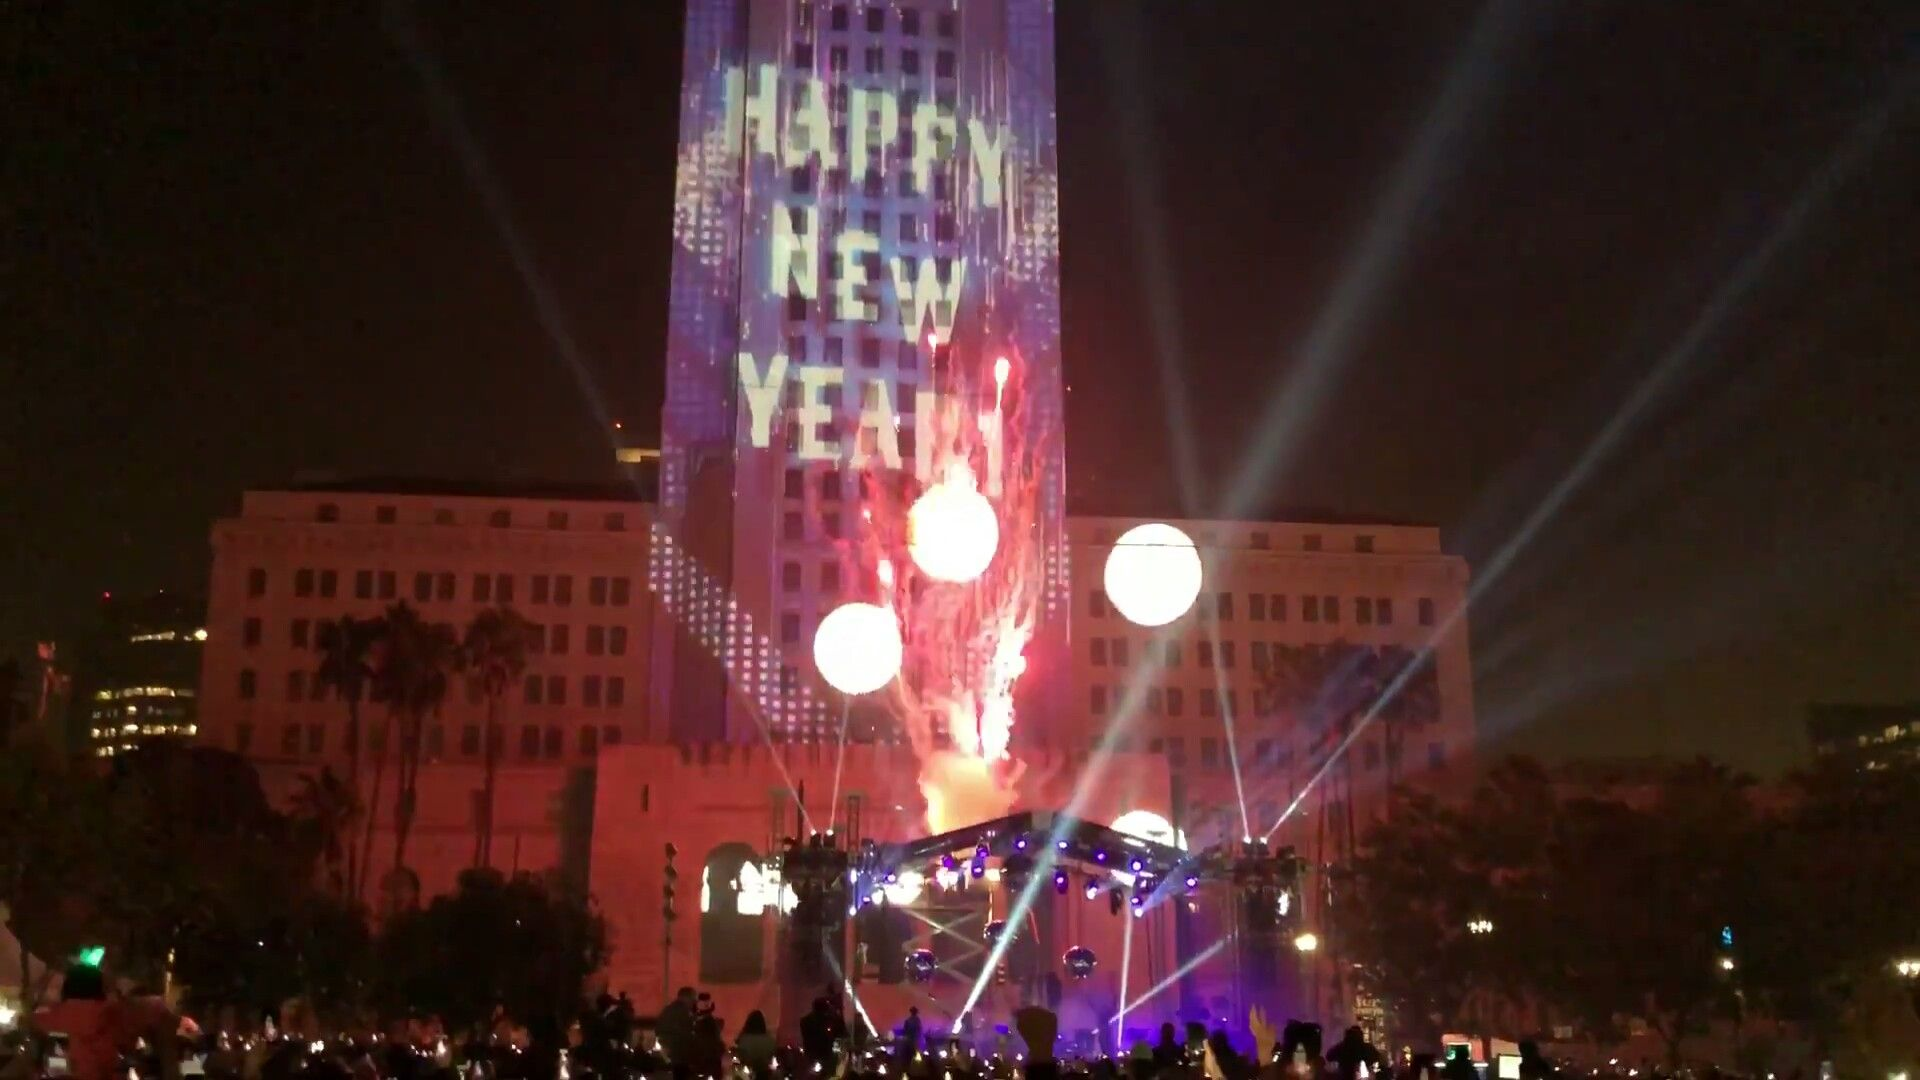 Happy New Year Los Angeles 2018 LA fireworks grand park down town     Happy New Year Los Angeles 2018 LA fireworks grand park down town